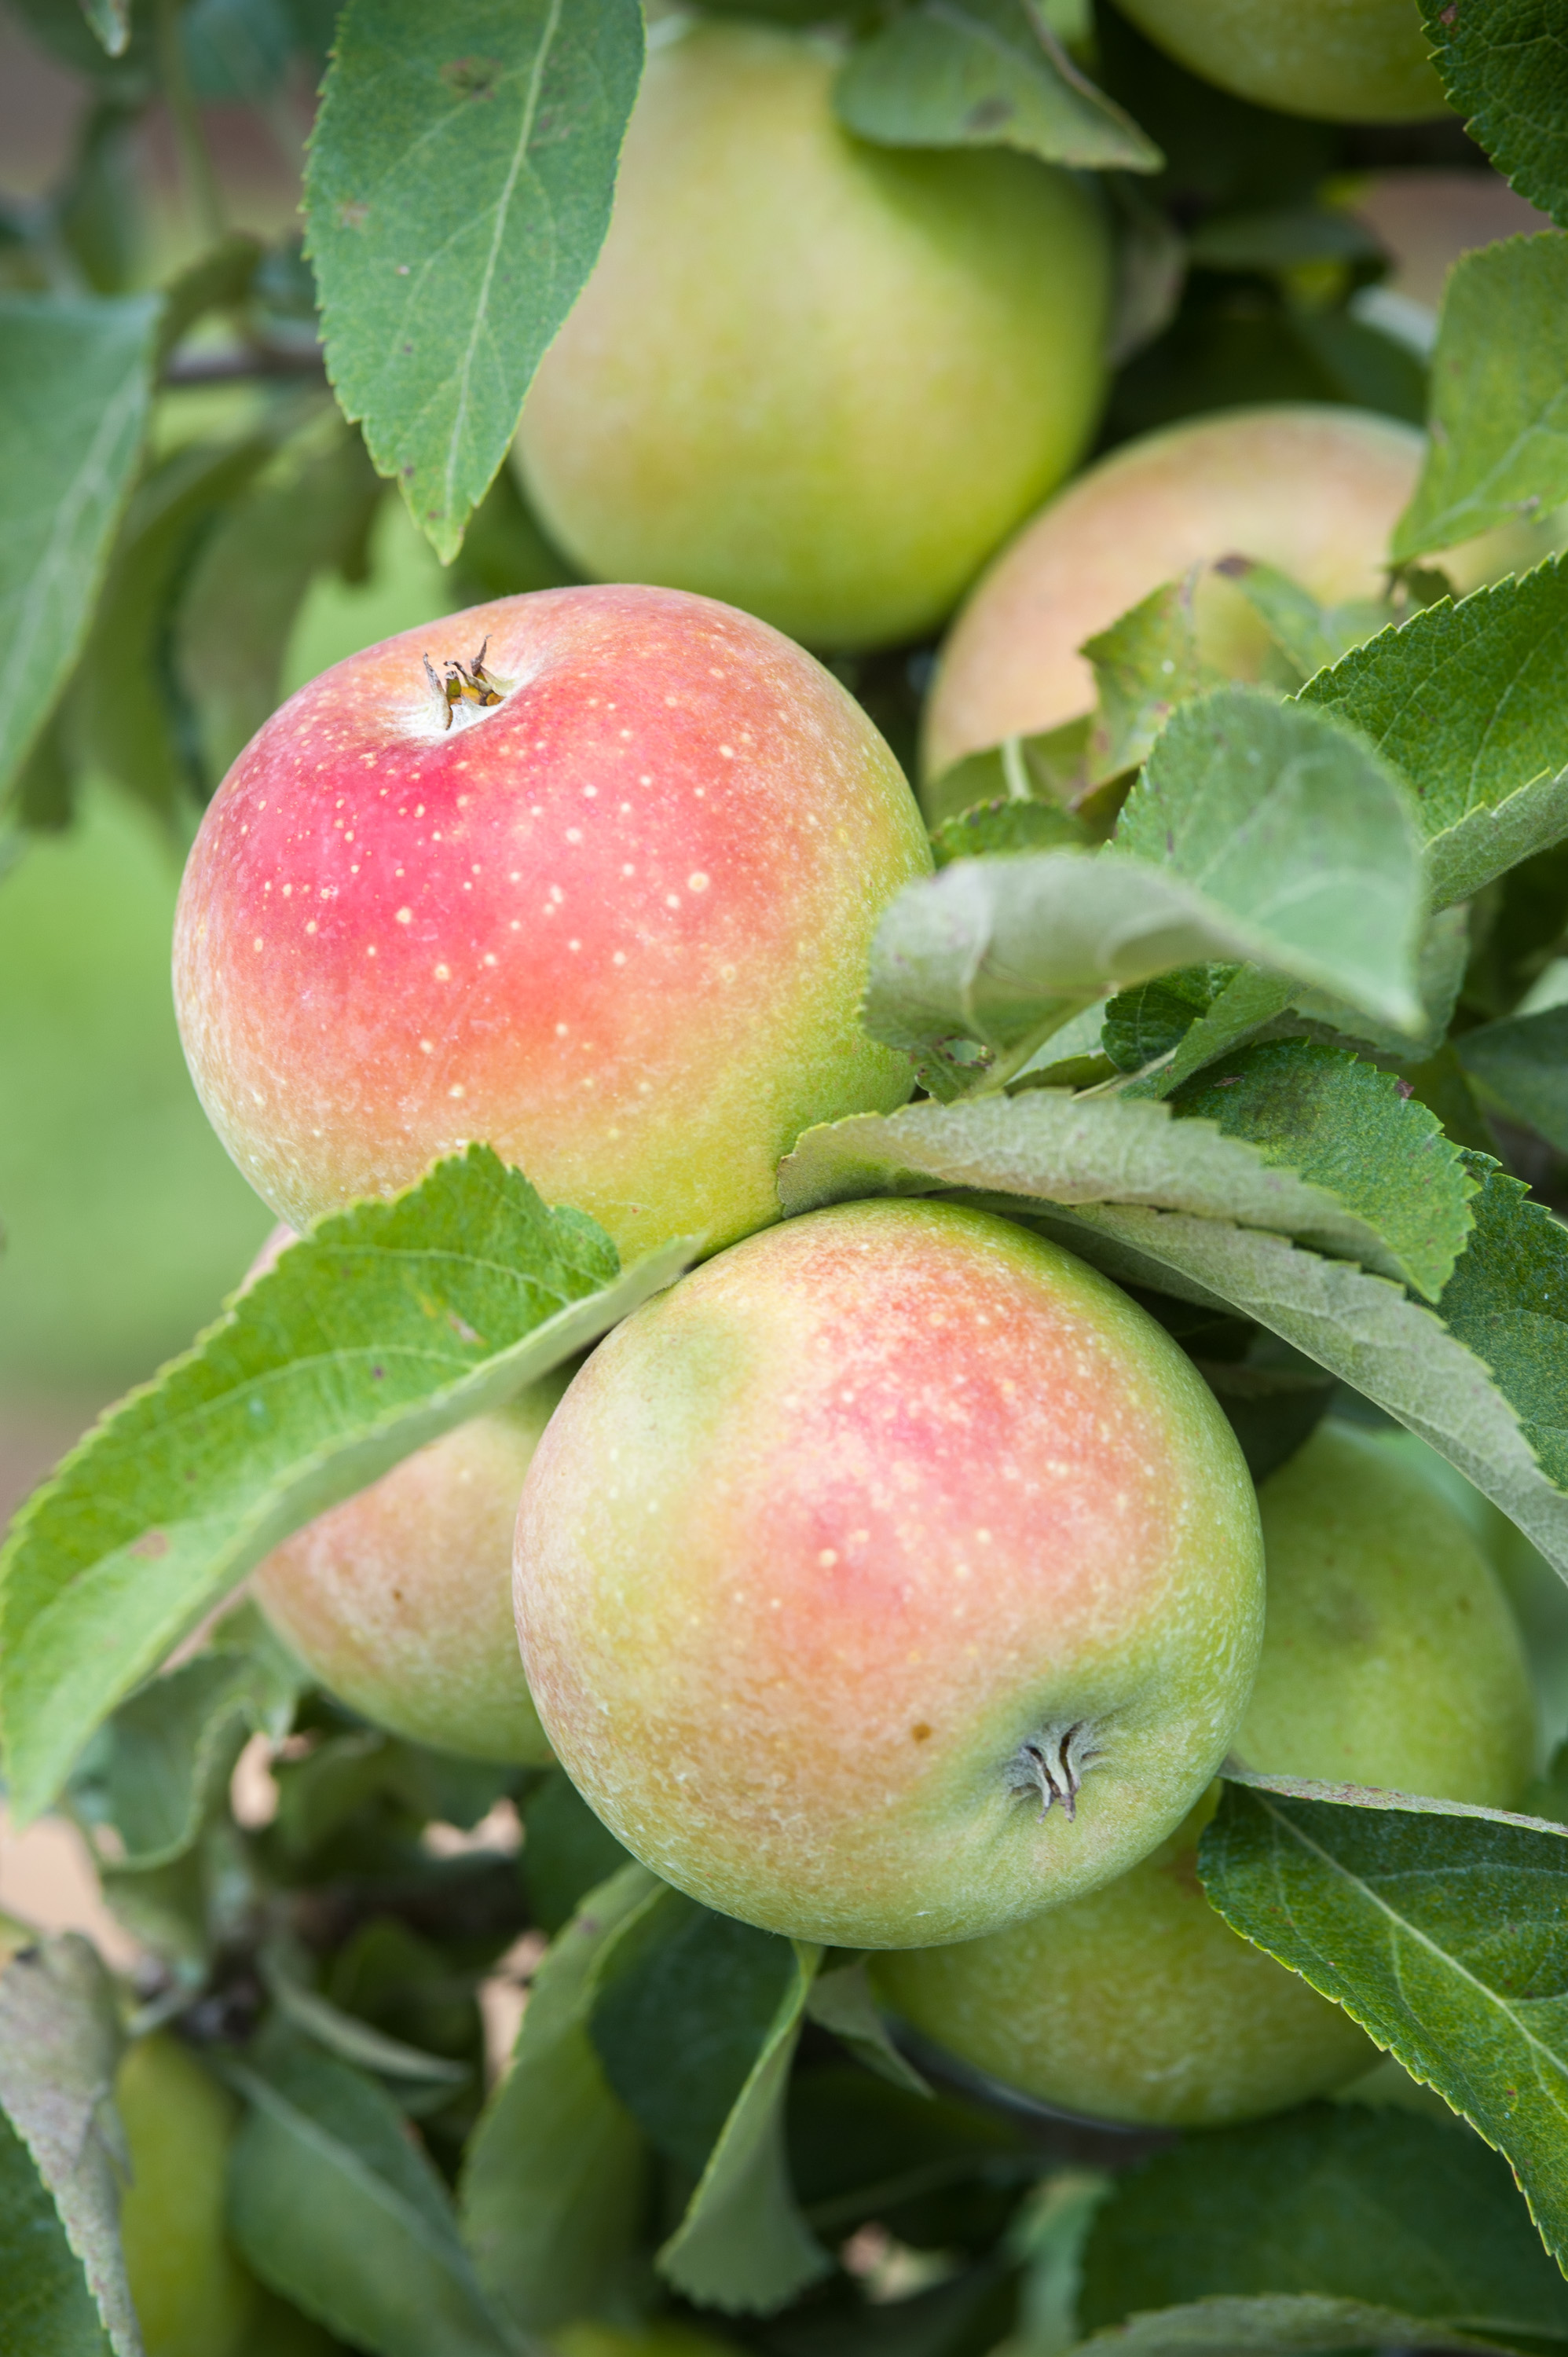 Image is a close up of apples on the tree.  Image by Edwin Remsberg.